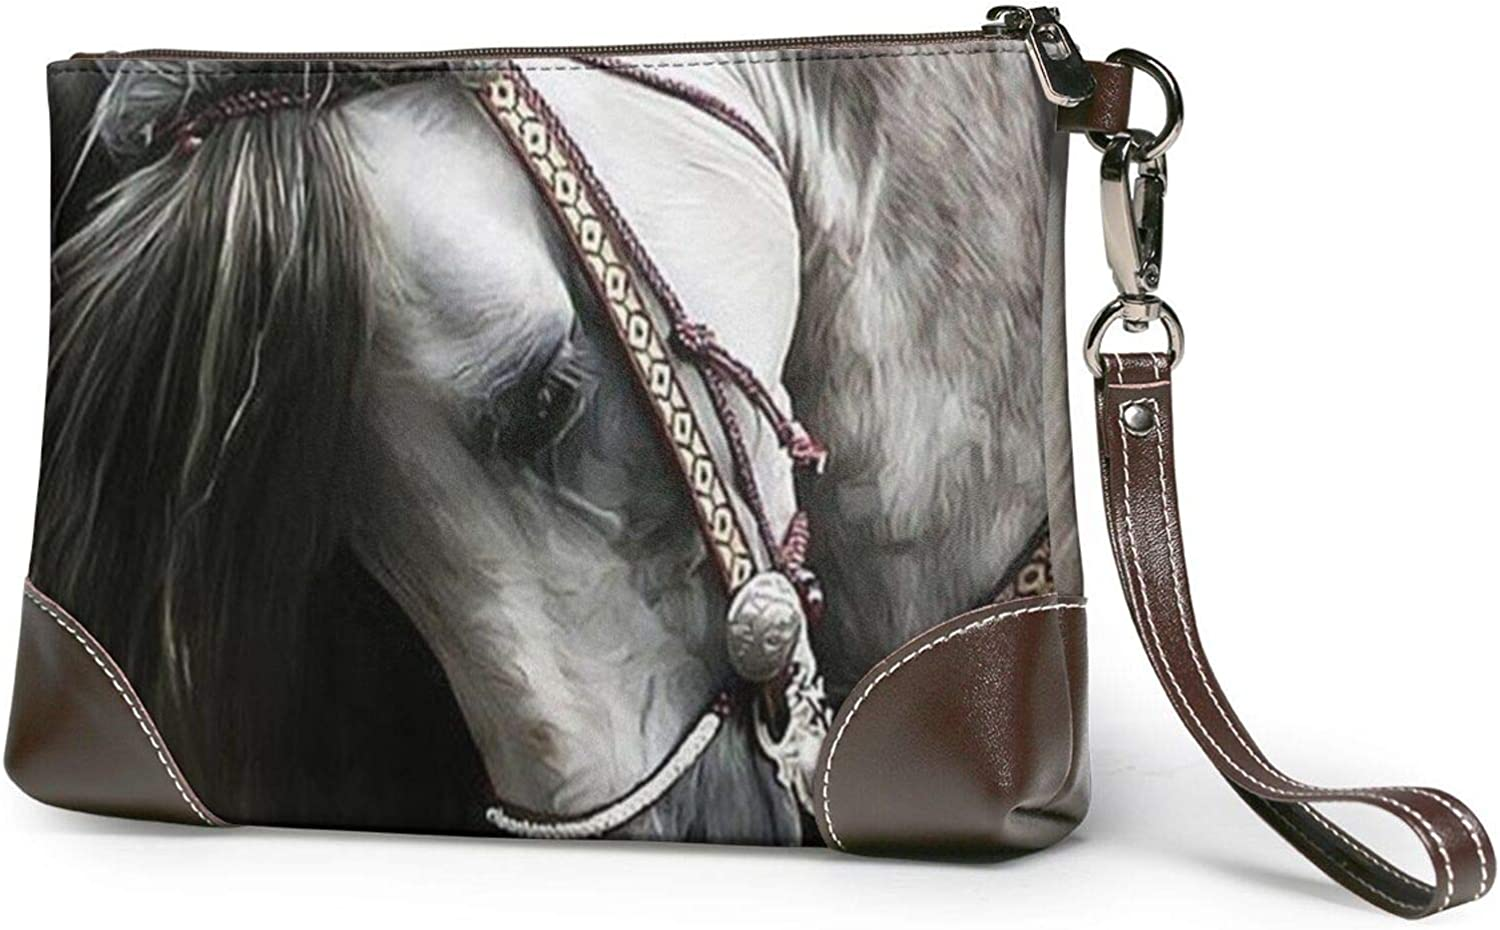 White Horse Clutch Purses cheap Leather Wristlet Very popular Wallet